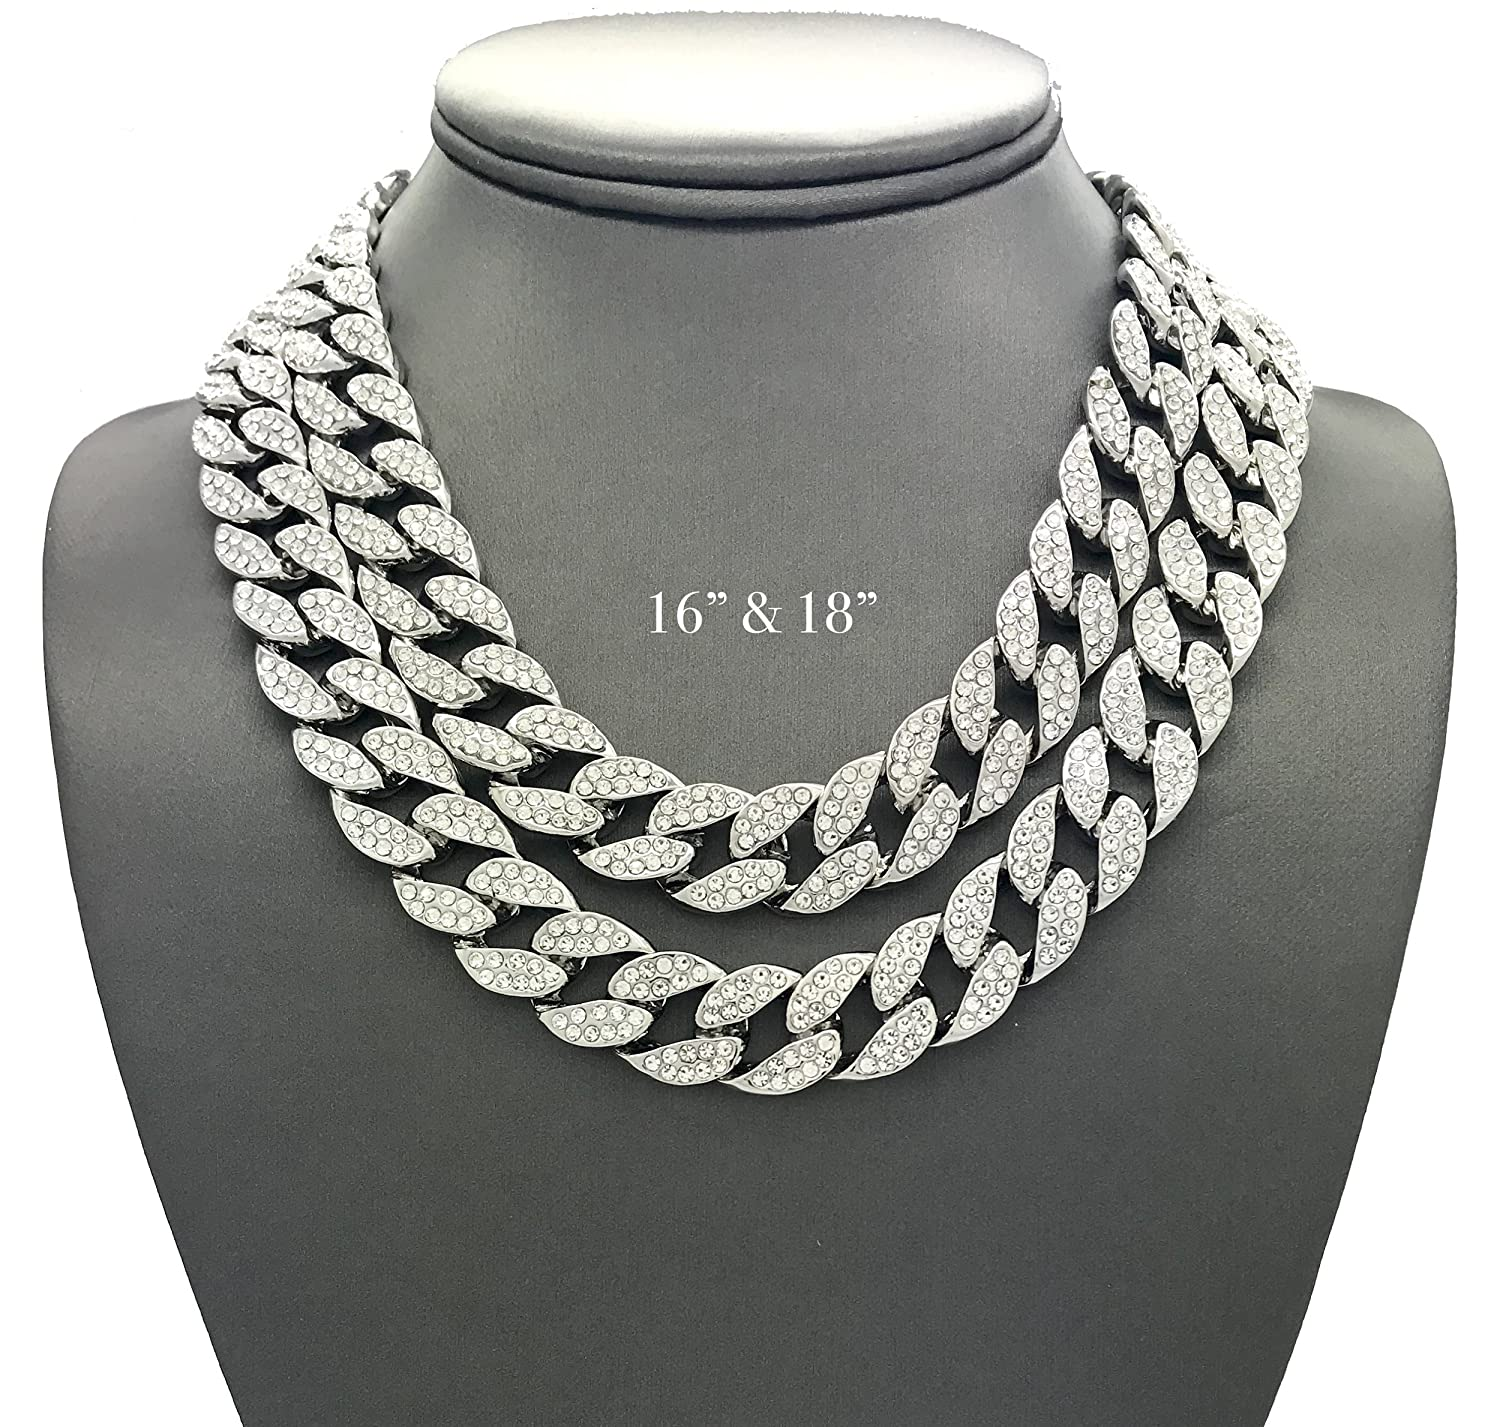 Shiny Jewelers USA Mens Iced Out Hip Hop Silver tone CZ Miami Cuban Link Chain Choker Necklace unbranded